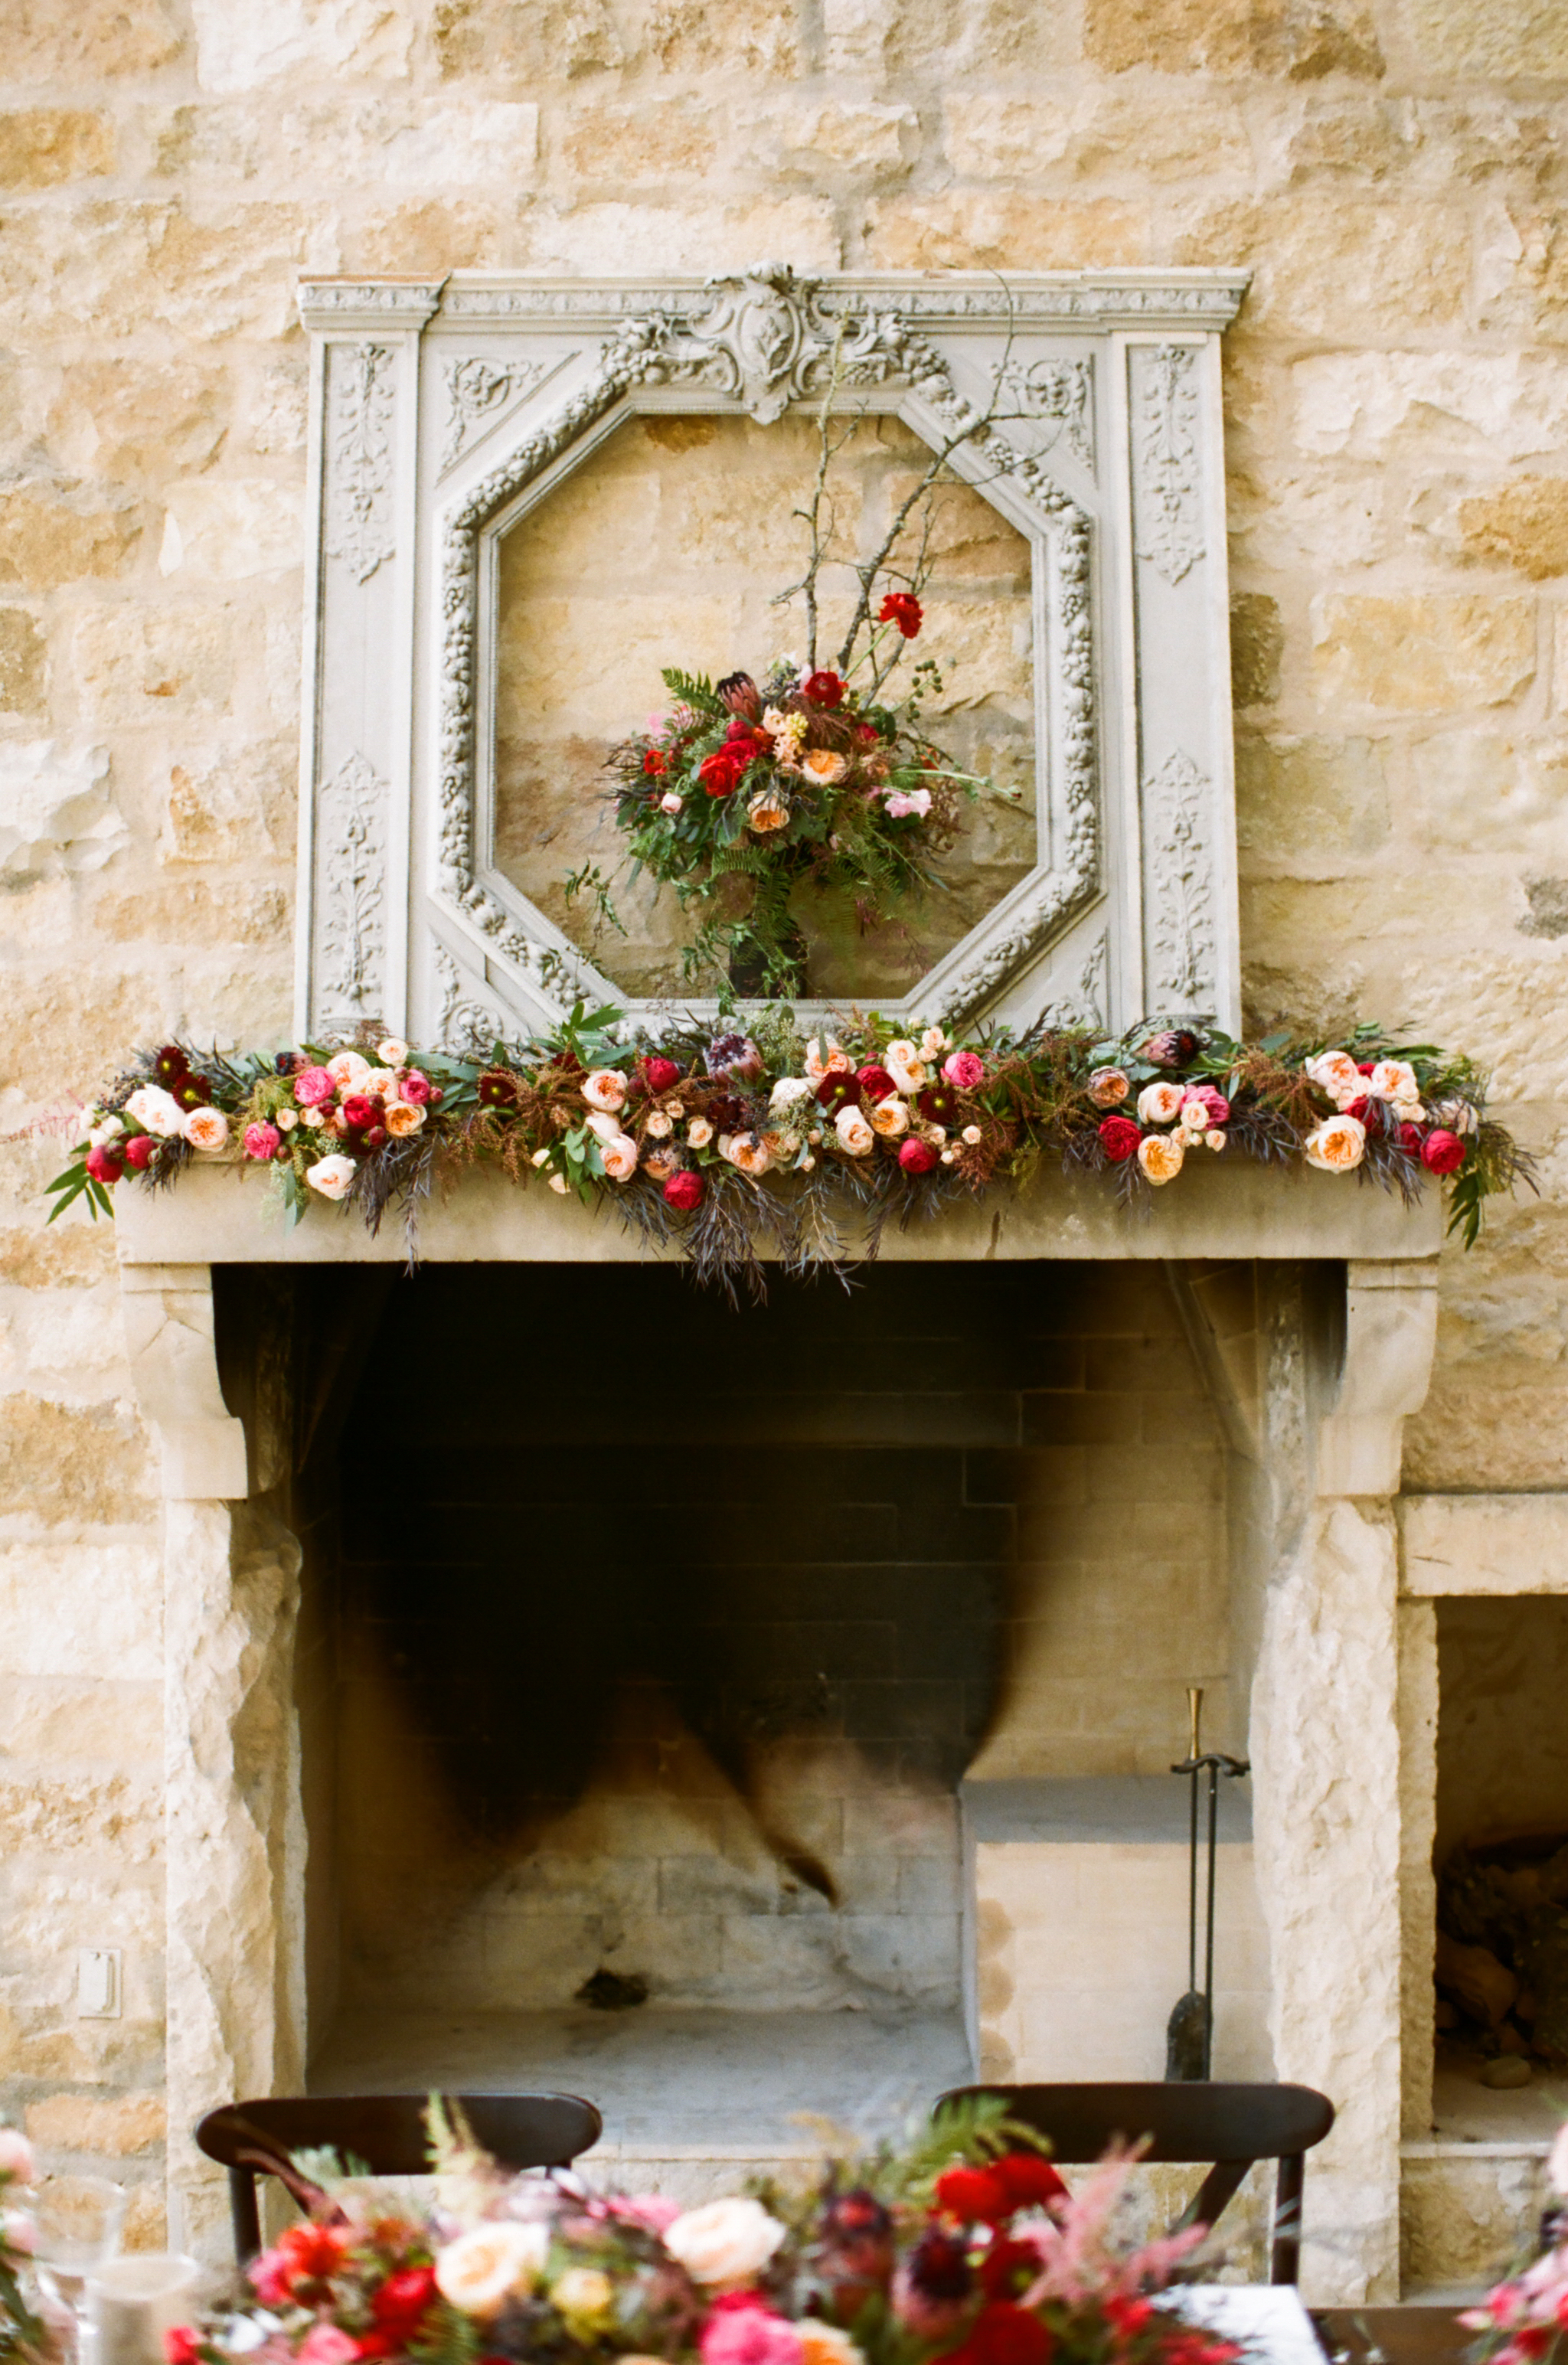 mantel with flowers